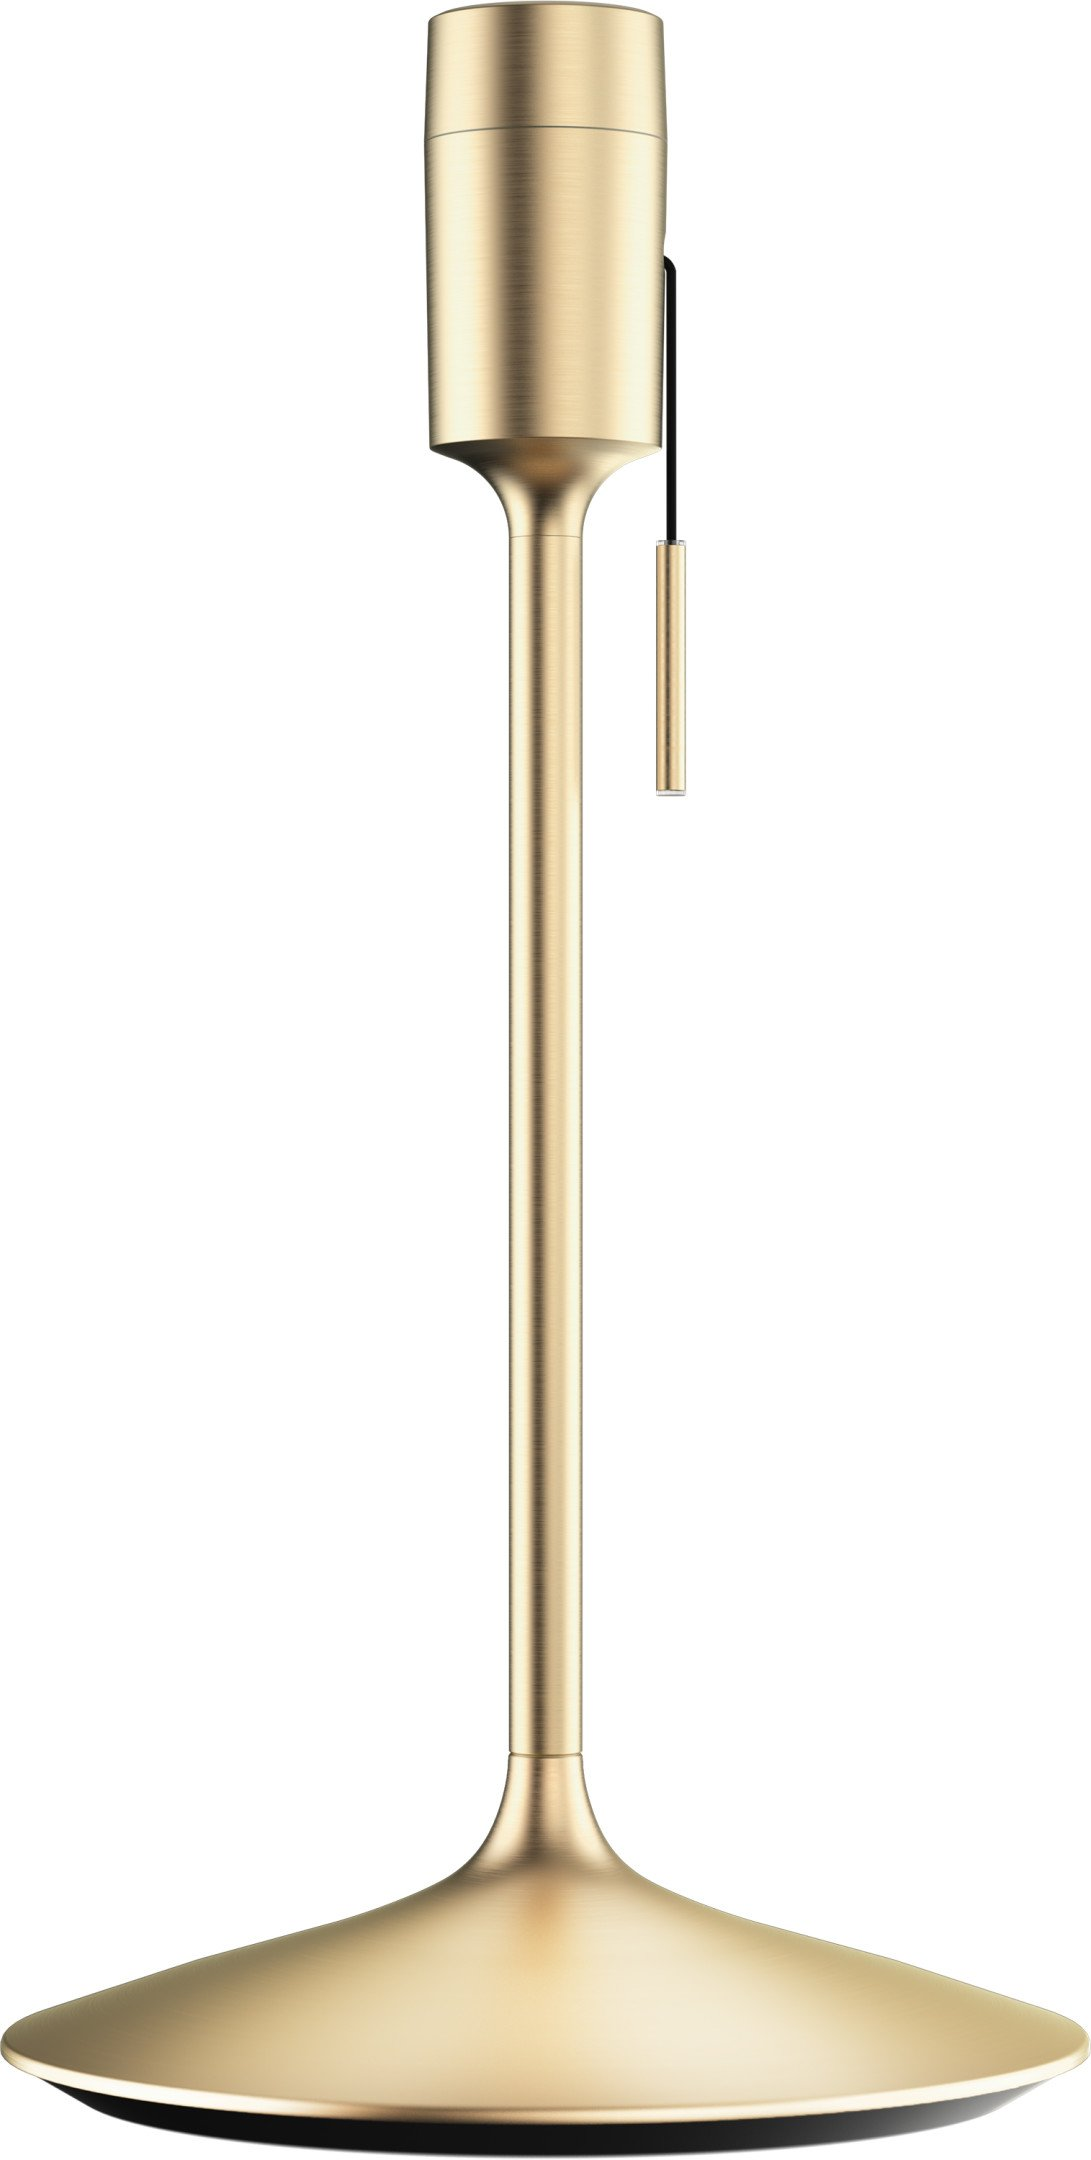 Champagne Table Lamp Stand Brushed Brass by A. Klem for UMAGE